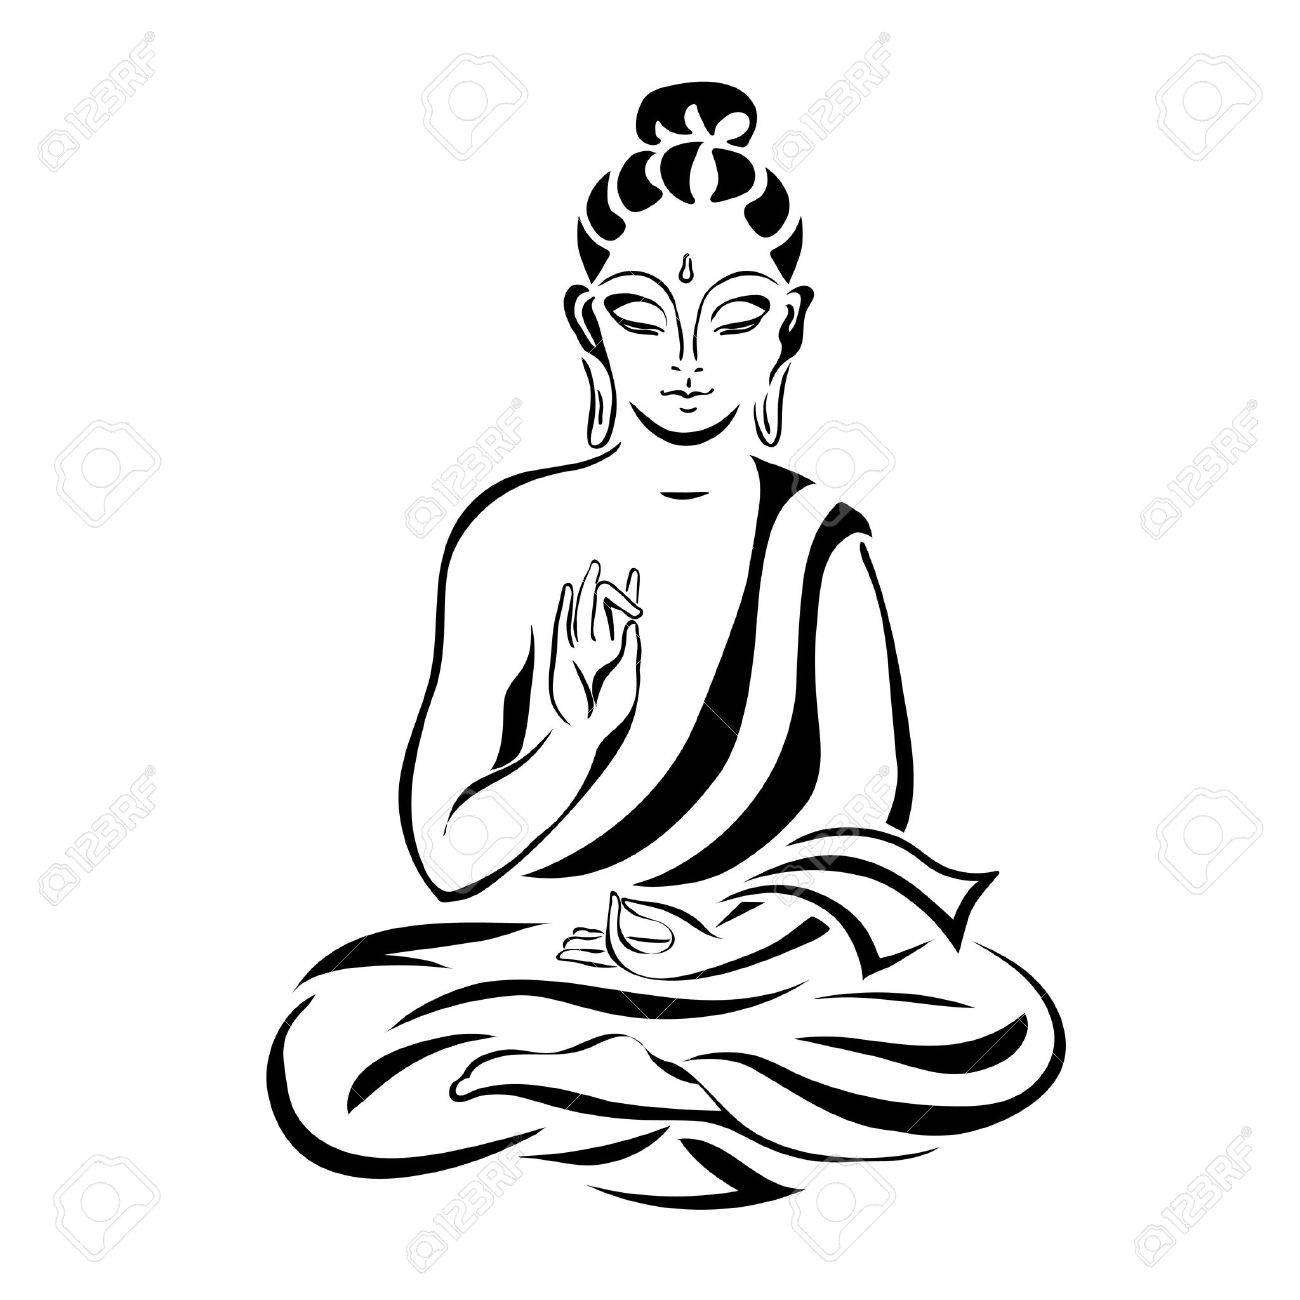 1300x1300 Buddha In The Lotus Position. Black Outlines Isolated On White